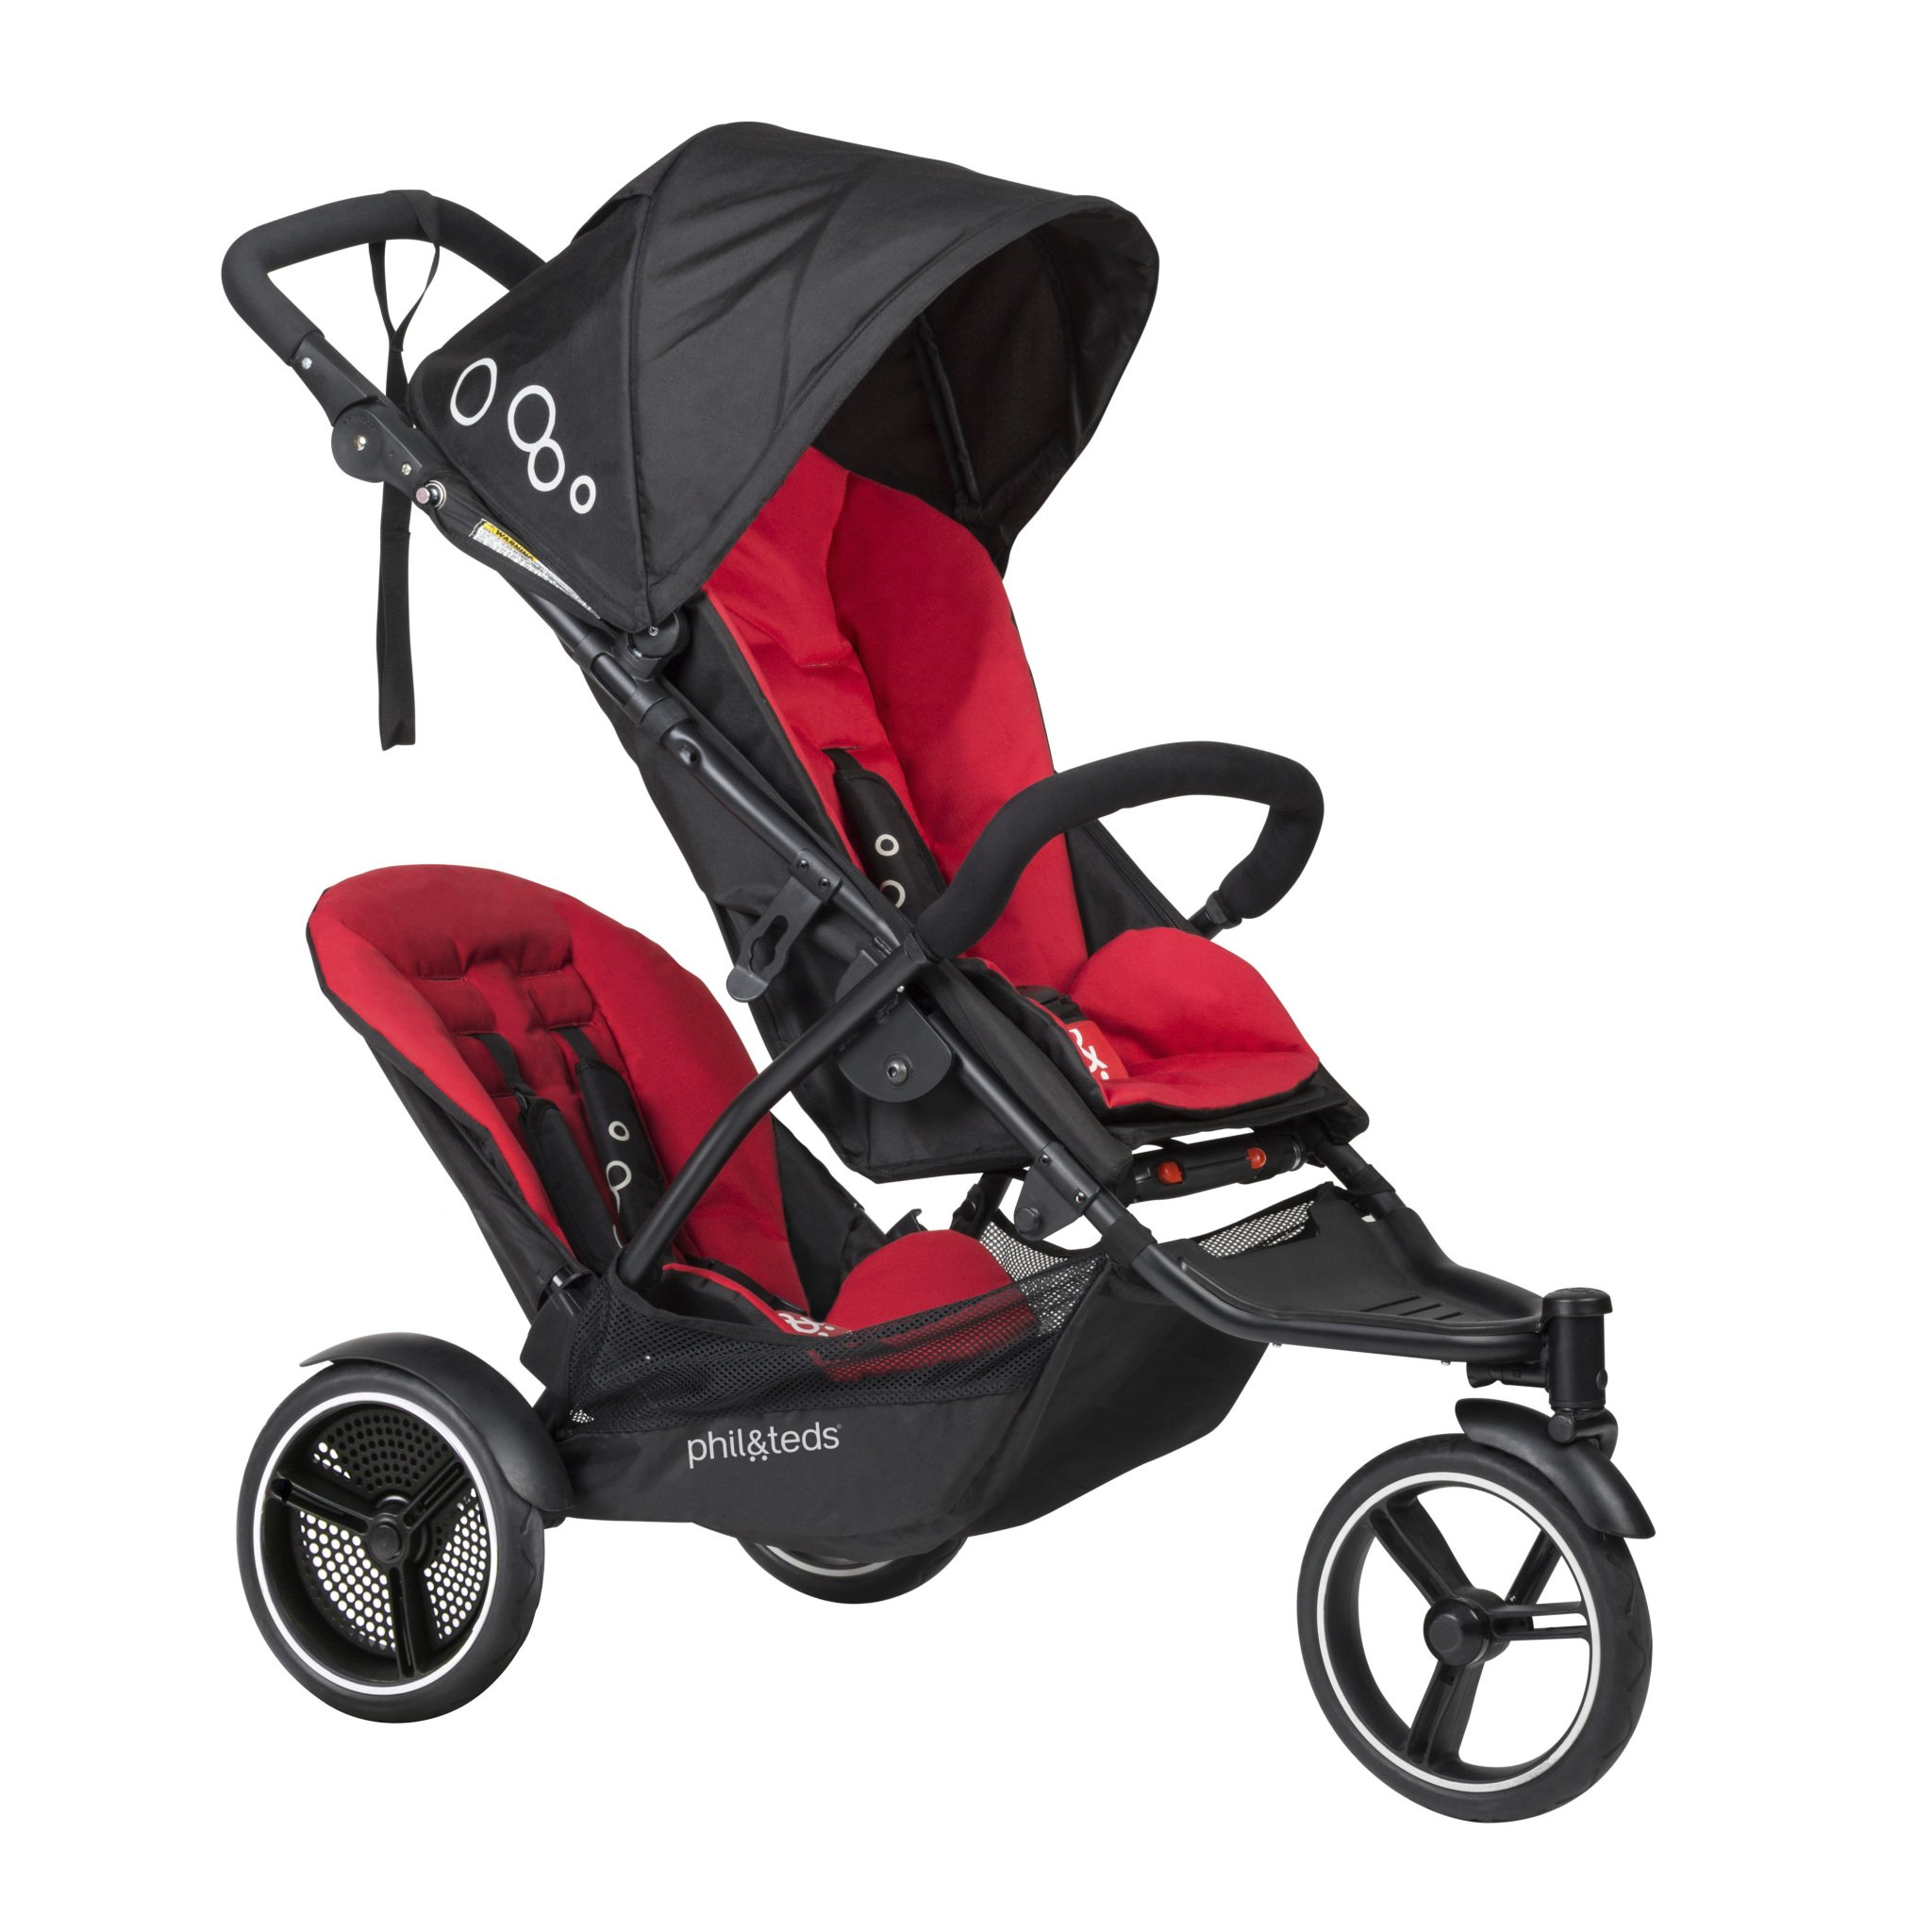 phil&teds Dot Compact Inline City Stroller with Double Kit, Chili - Compact Frame with Full Size Seat - Newborn Ready - Parent Facing Seat Included - Compact, One Hand Fold - Puncture Proof Tires